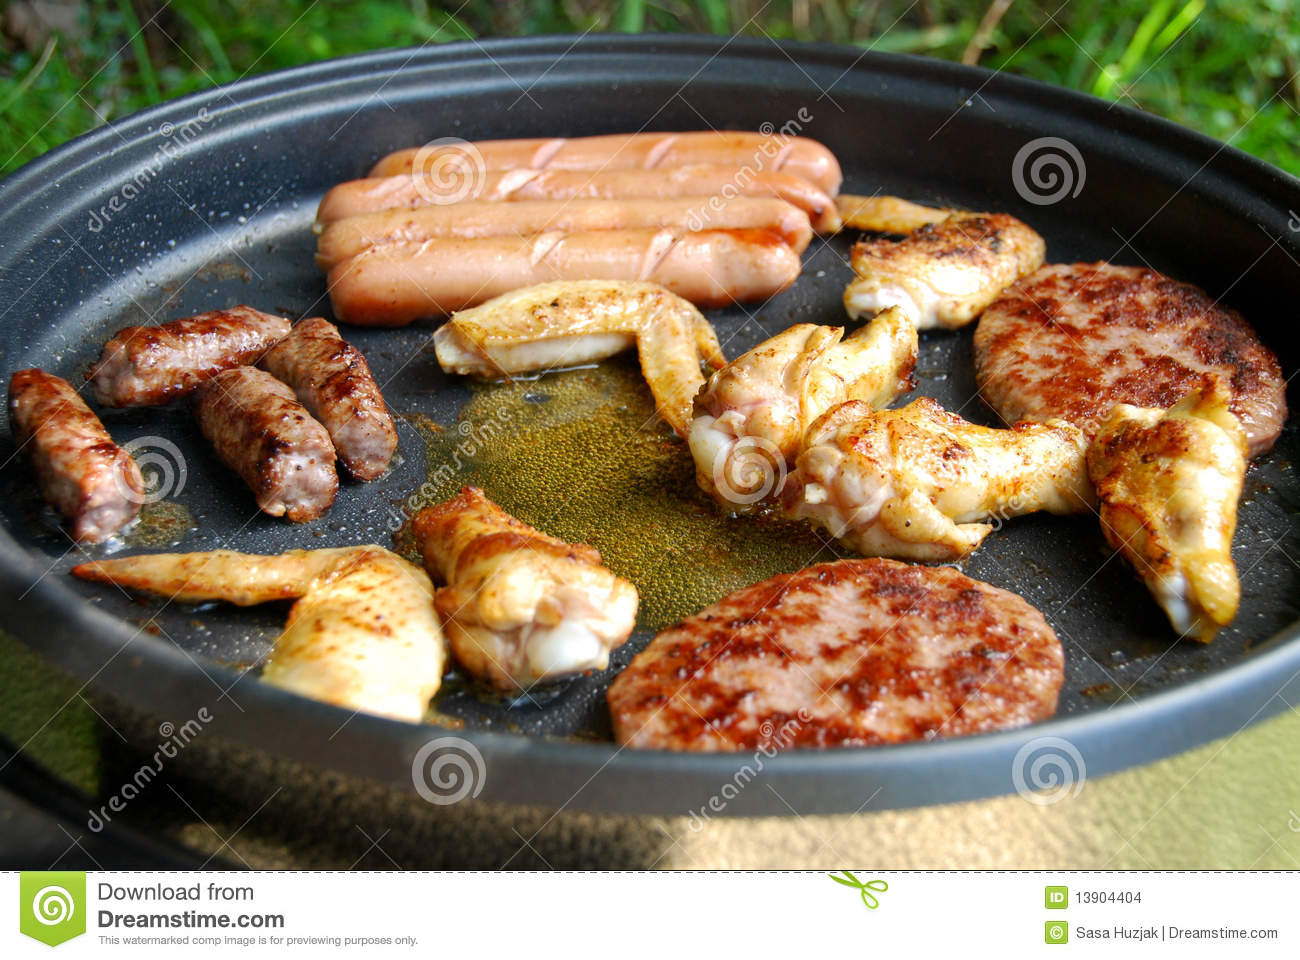 Meat Electric Grill Barbecue Stock Photo - Image: 13904404